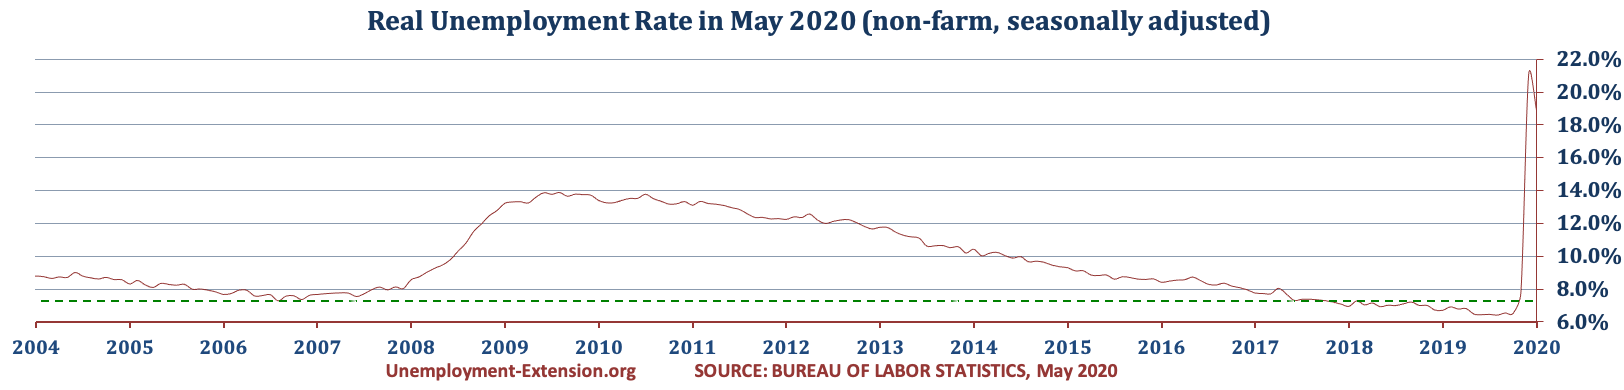 US Real National Unemployment Rate in May of 2020 is 18.9% (April 21.1%, March 2020 7.8%, and 6.5% in February 2020).